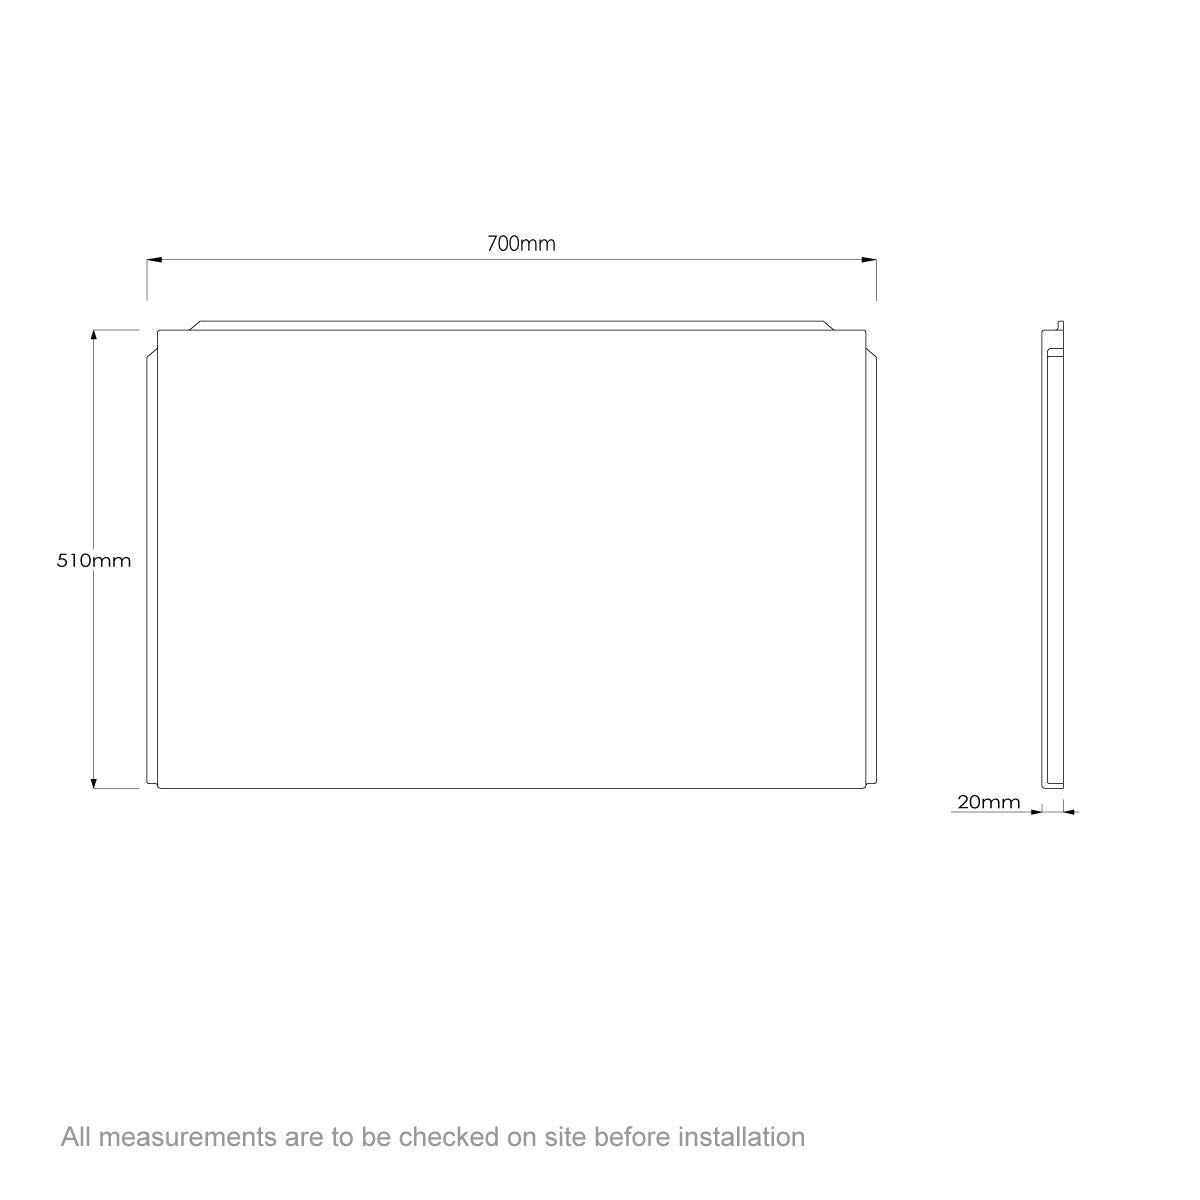 Dimensions for Orchard P shaped shower bath acrylic end panel 700mm